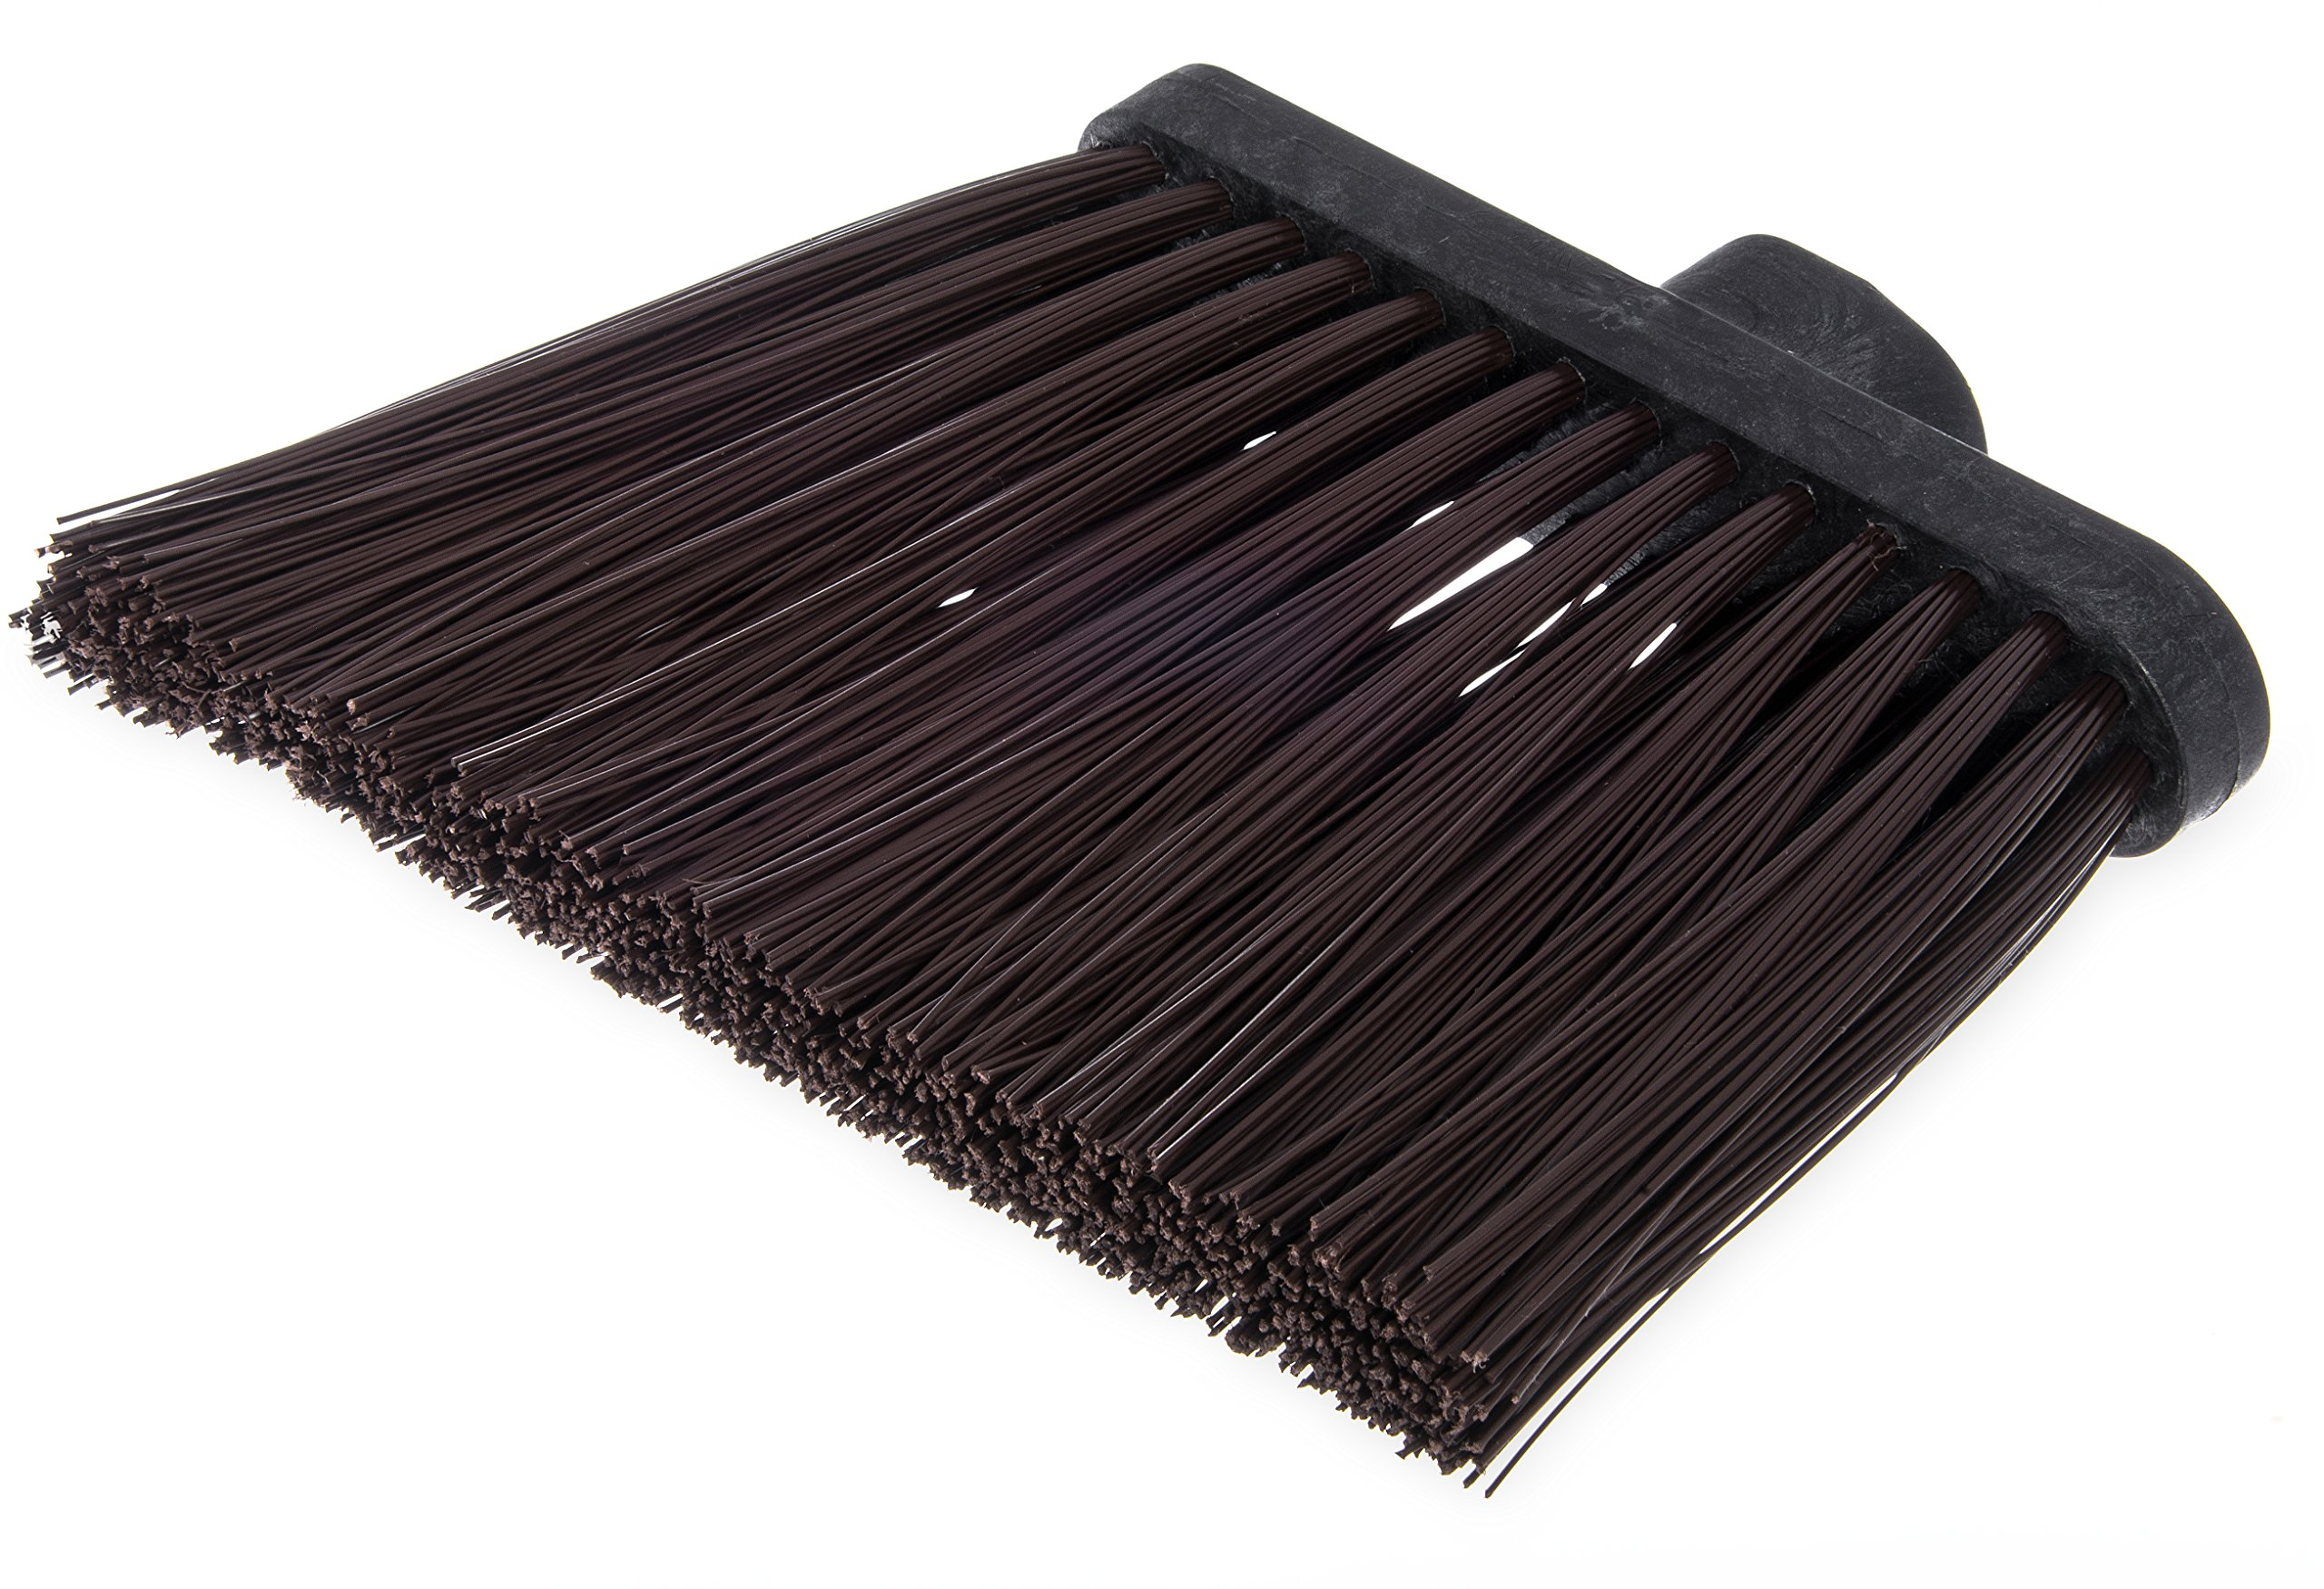 Carlisle 3686801 Duo-Sweep UnFlagged Angle Broom Head, 8'', Brown (Pack of 12)